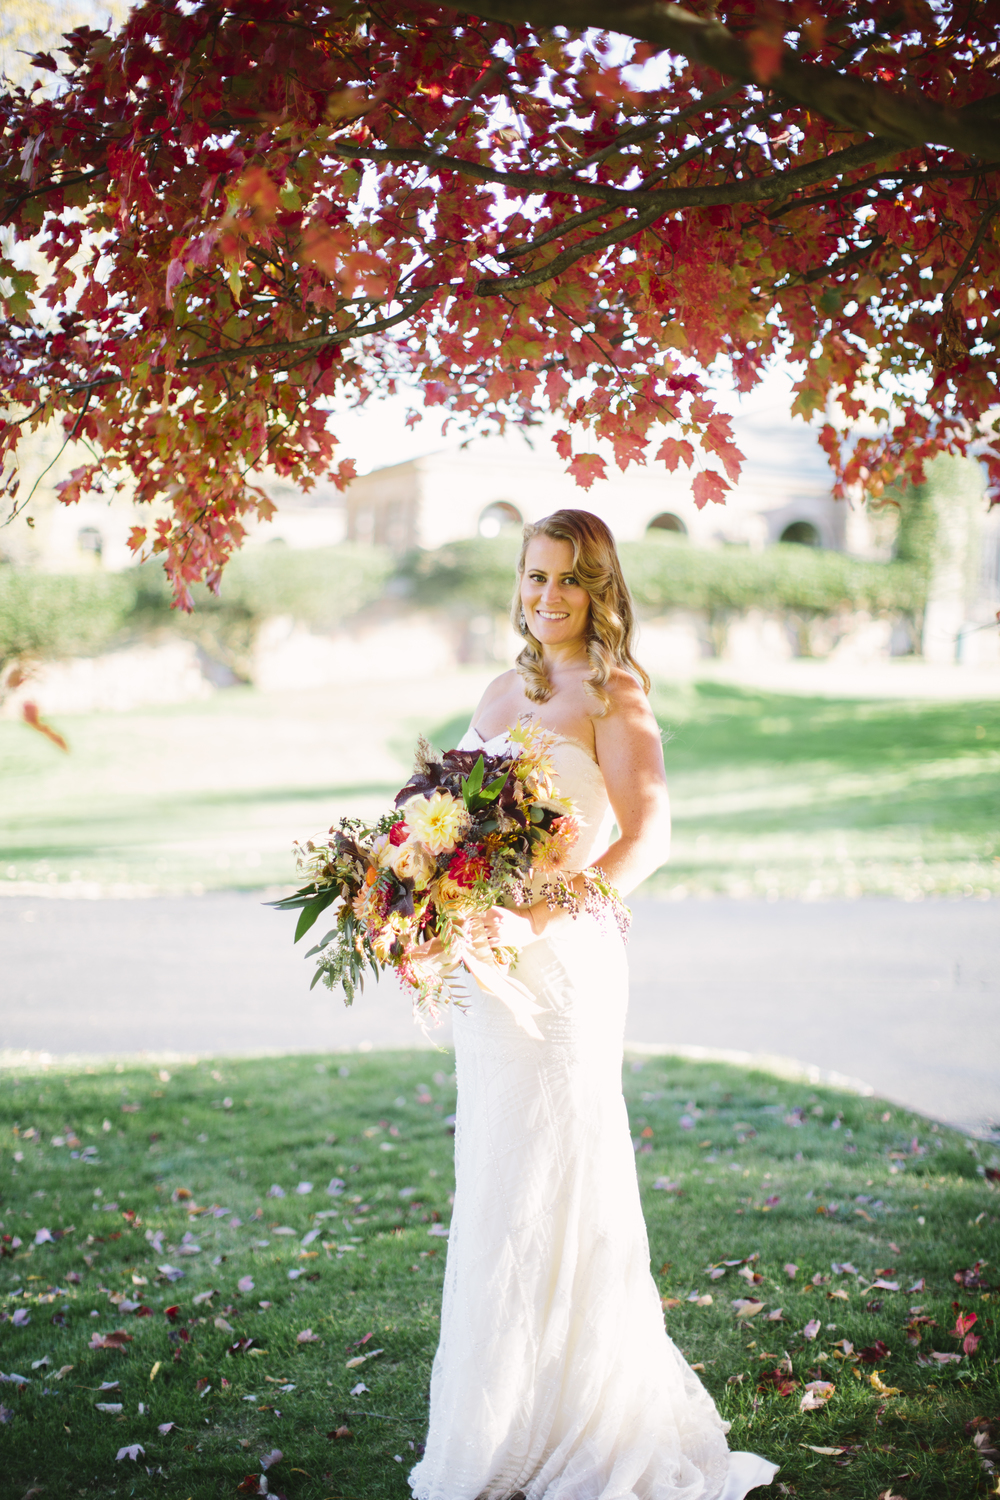 A Garden Party Florist, Jasna Polana, Saltwater Studios Photography, Wild